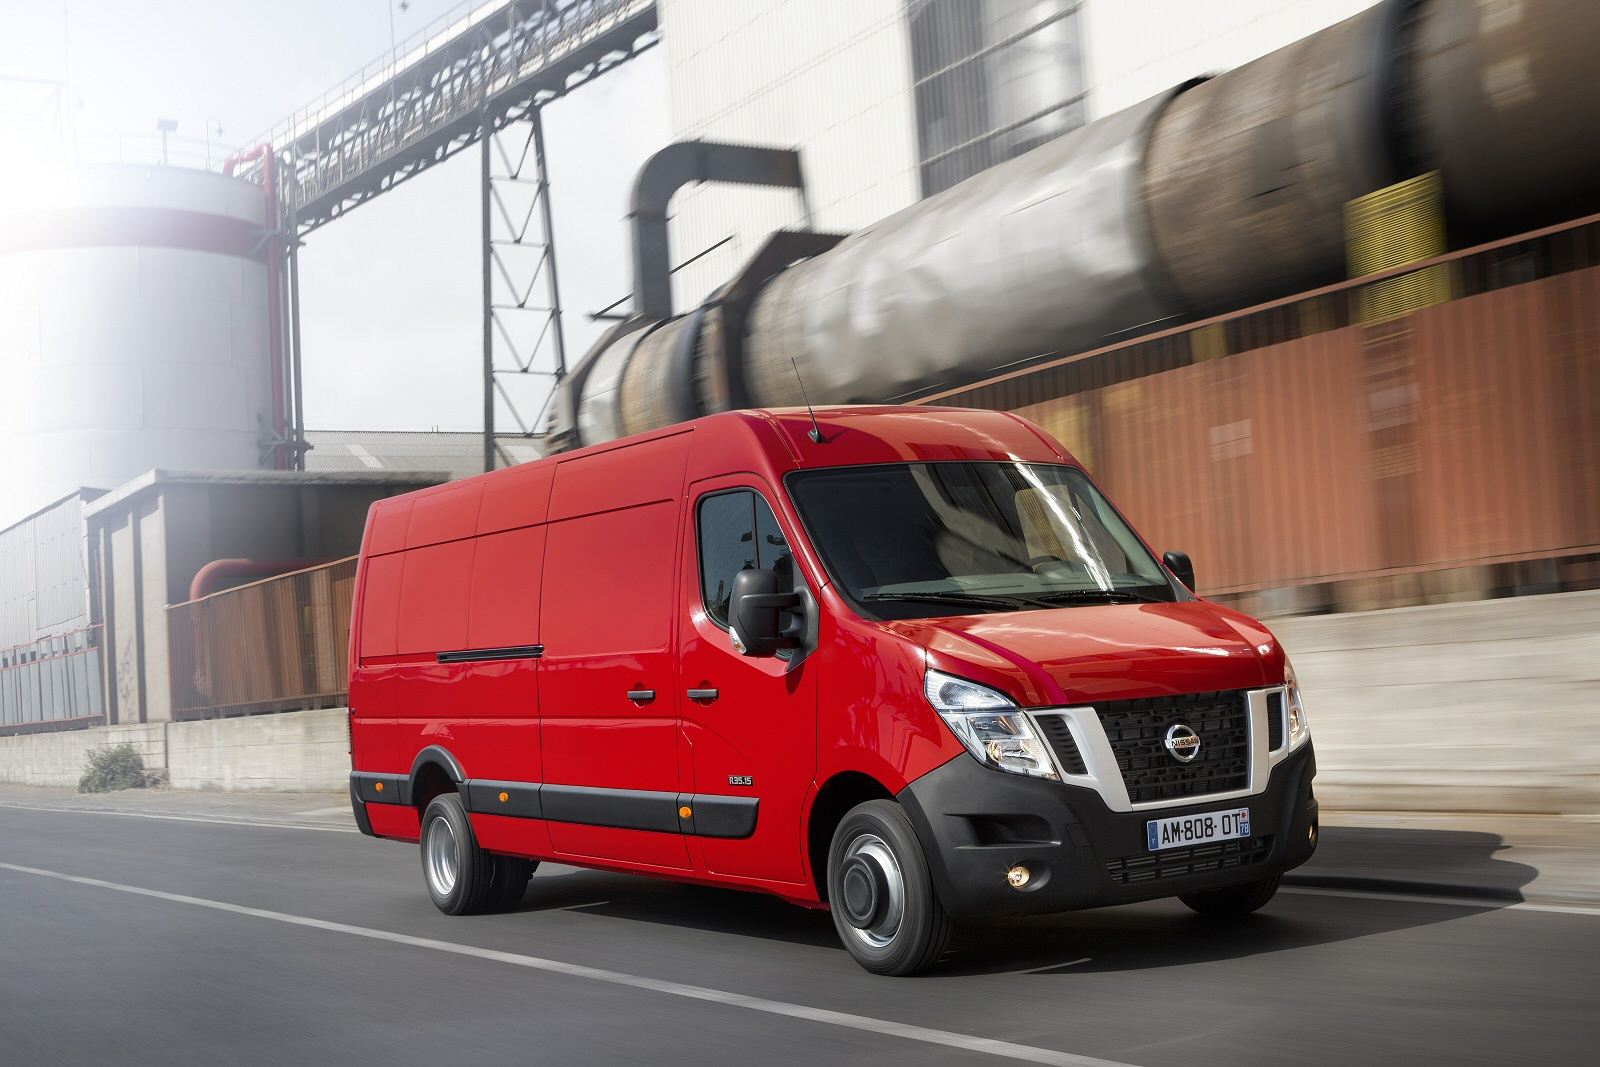 cba62b87a0 New Nissan Nv400 F28 L1 Diesel 2.3 dCi 110ps H1 E Van for Sale ...